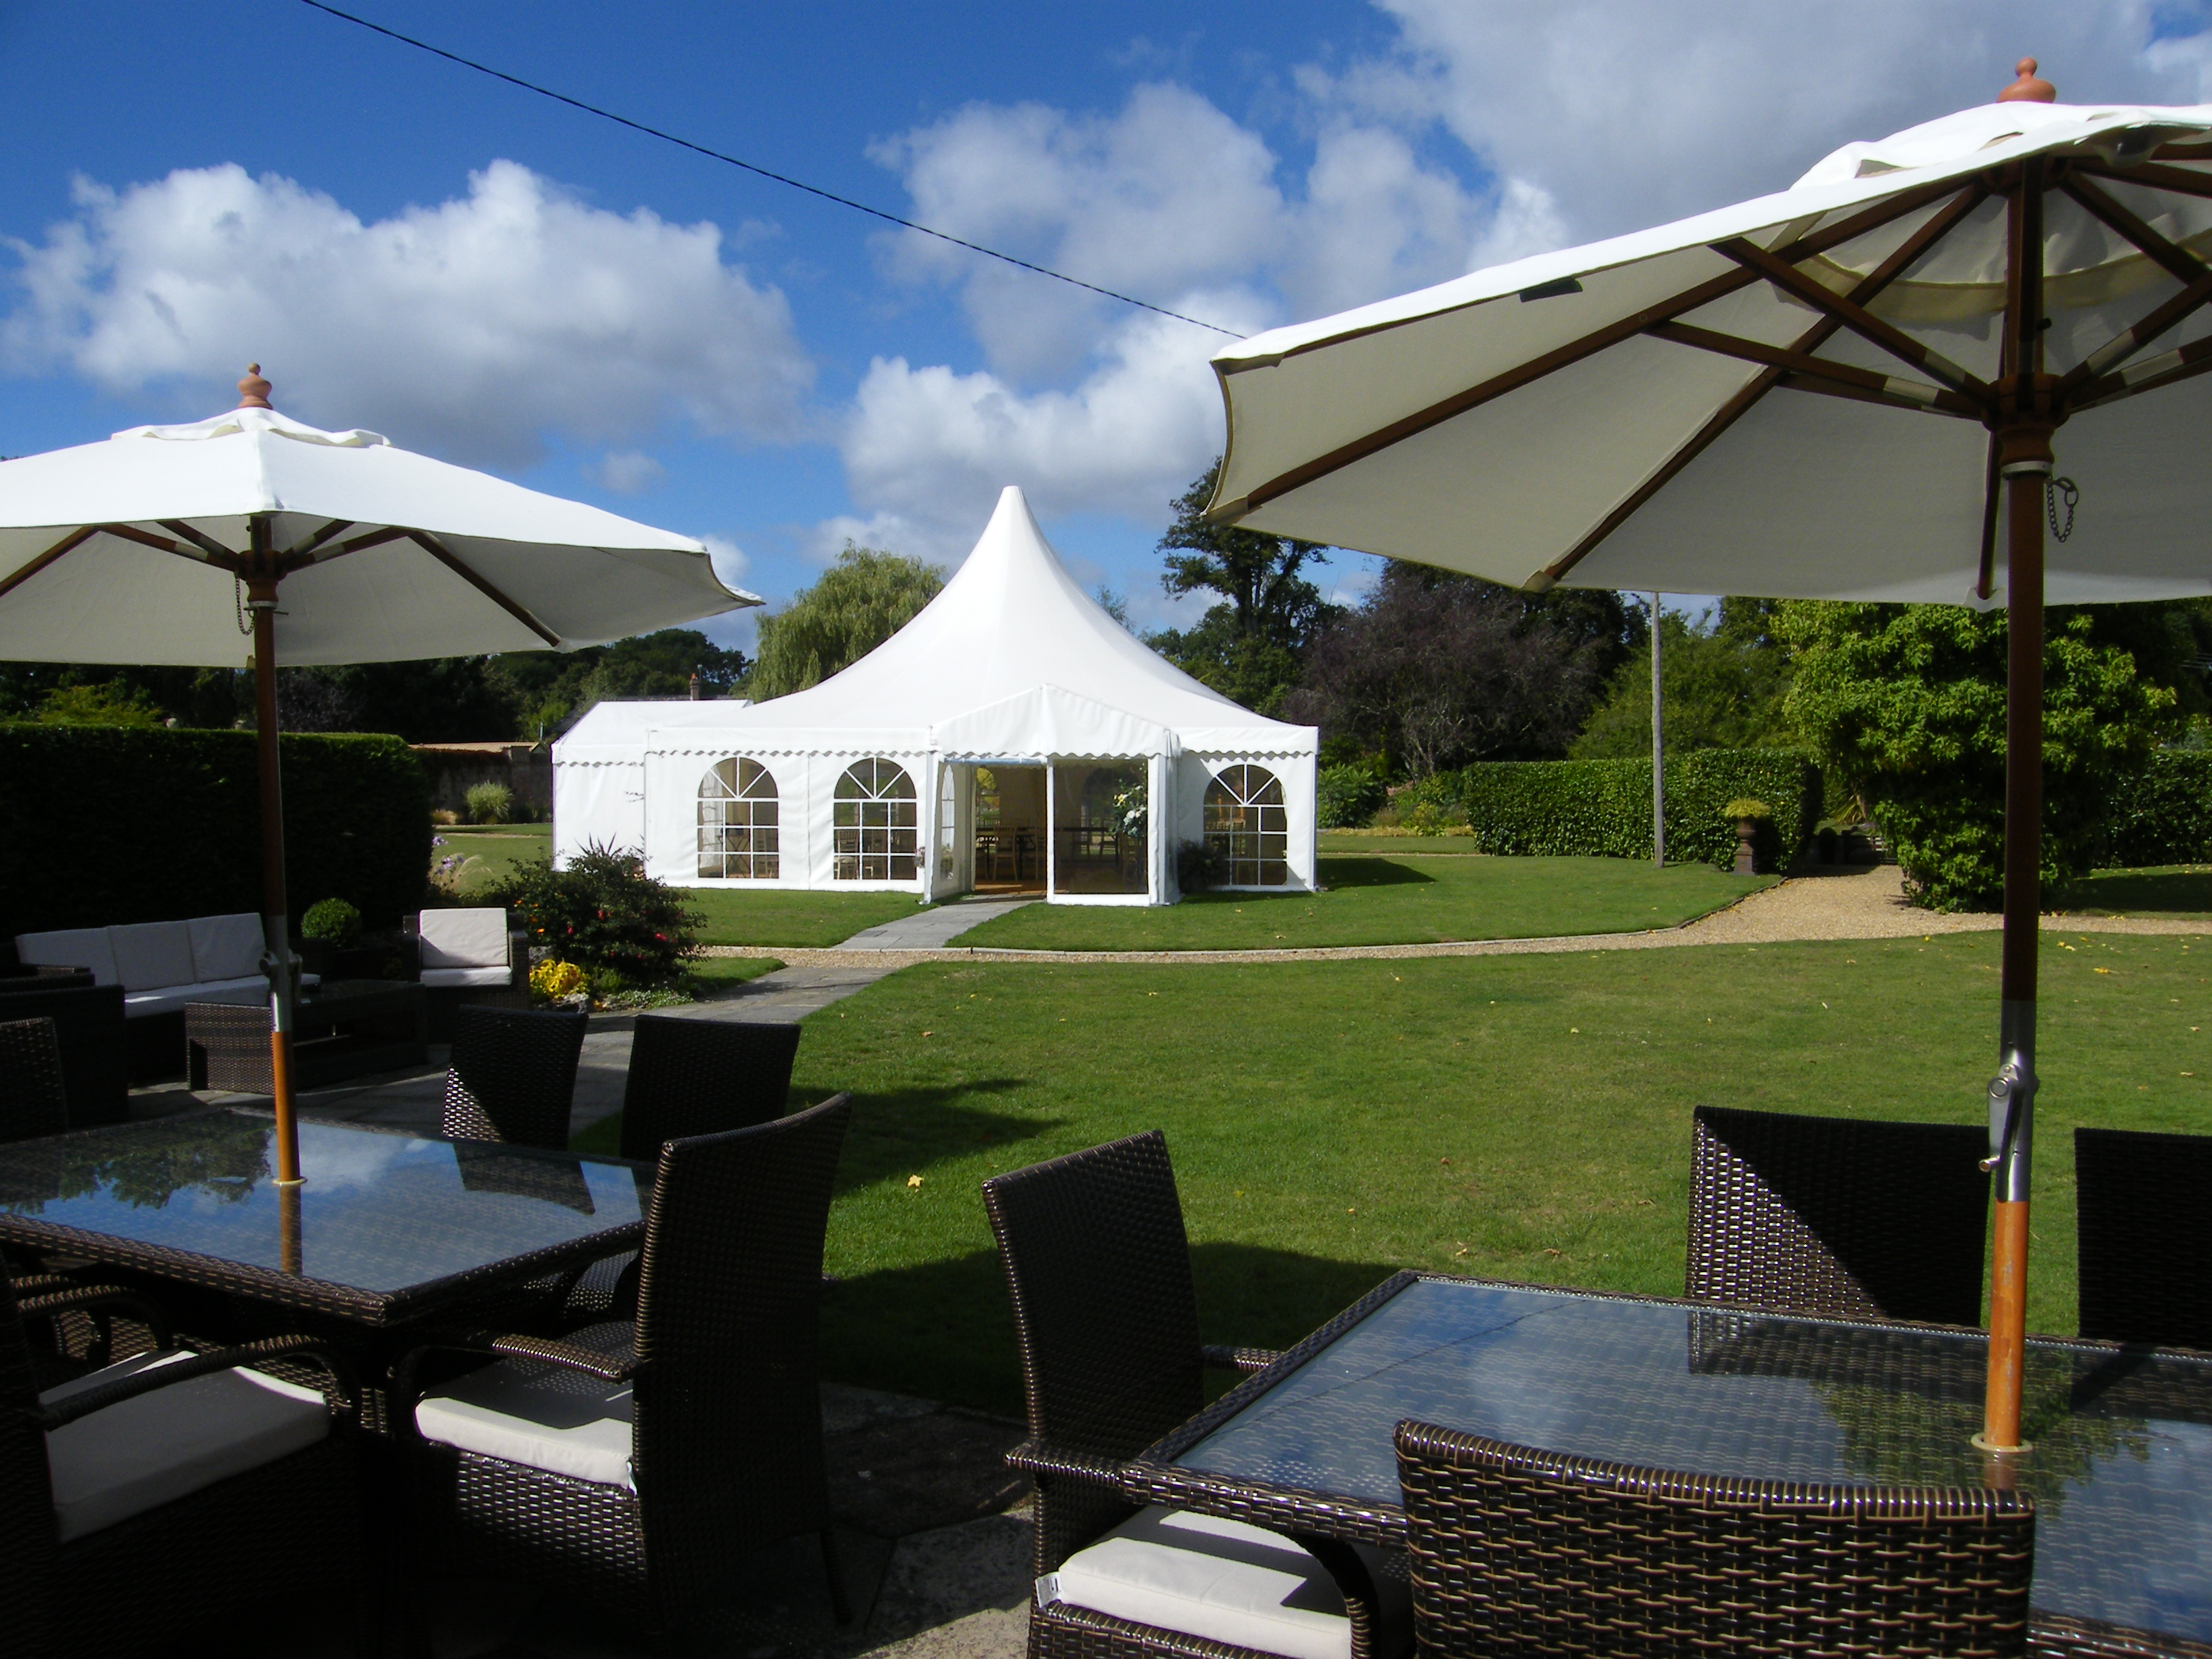 Pagoda style marquee